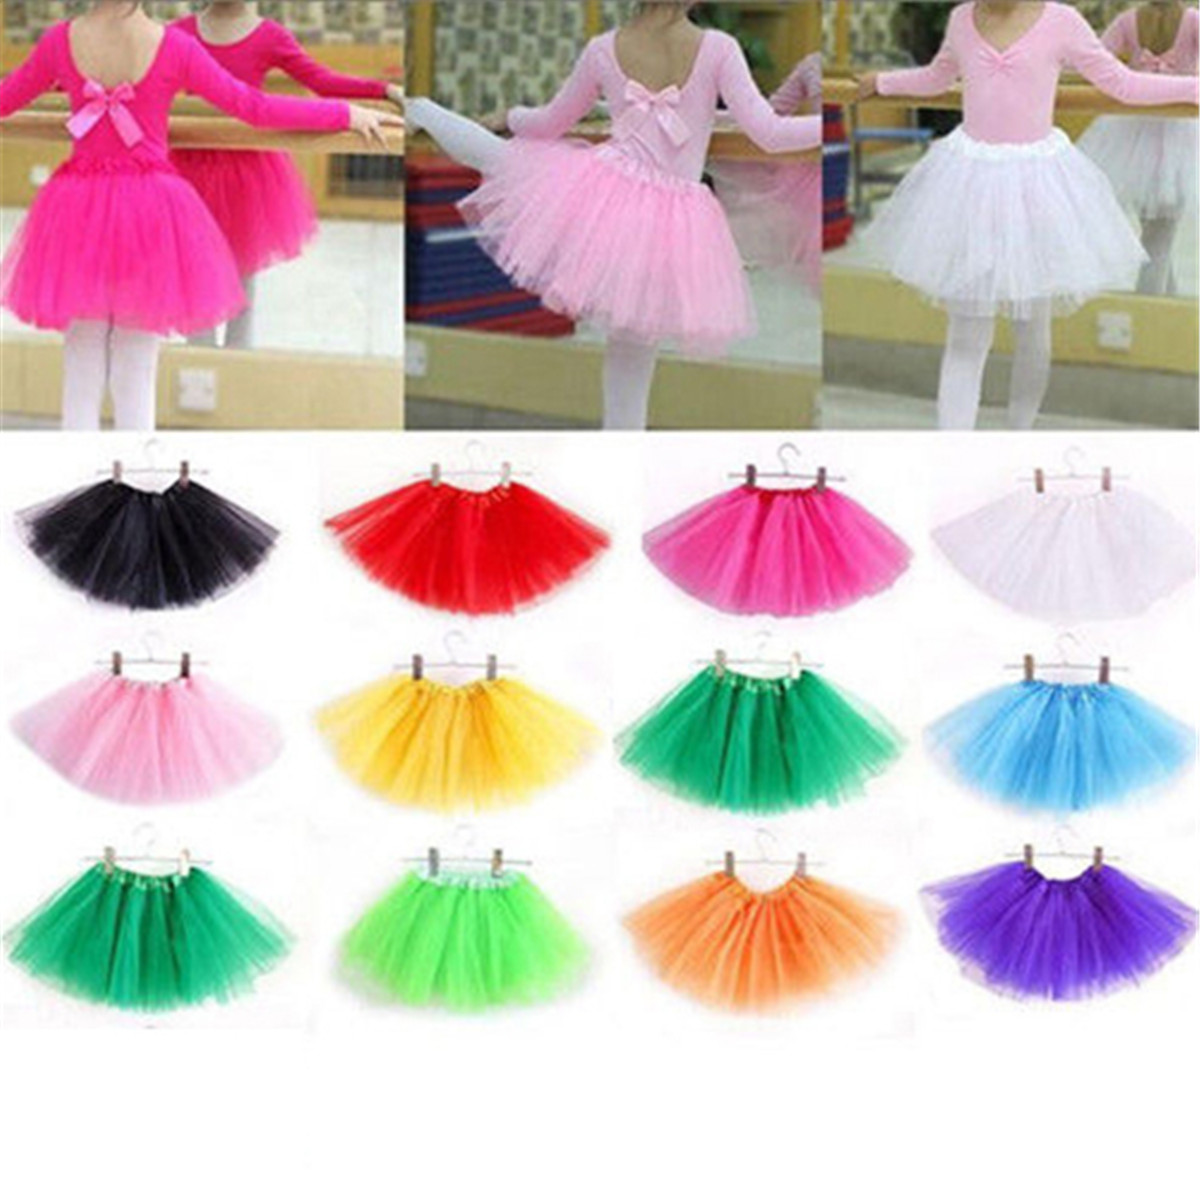 Lovely Fluffy Soft Tulle Baby Kids Dance Tutu Skirt For Girl Sequin 3 Layers Tulle Toddler Pettiskirt Children Dance Skirt